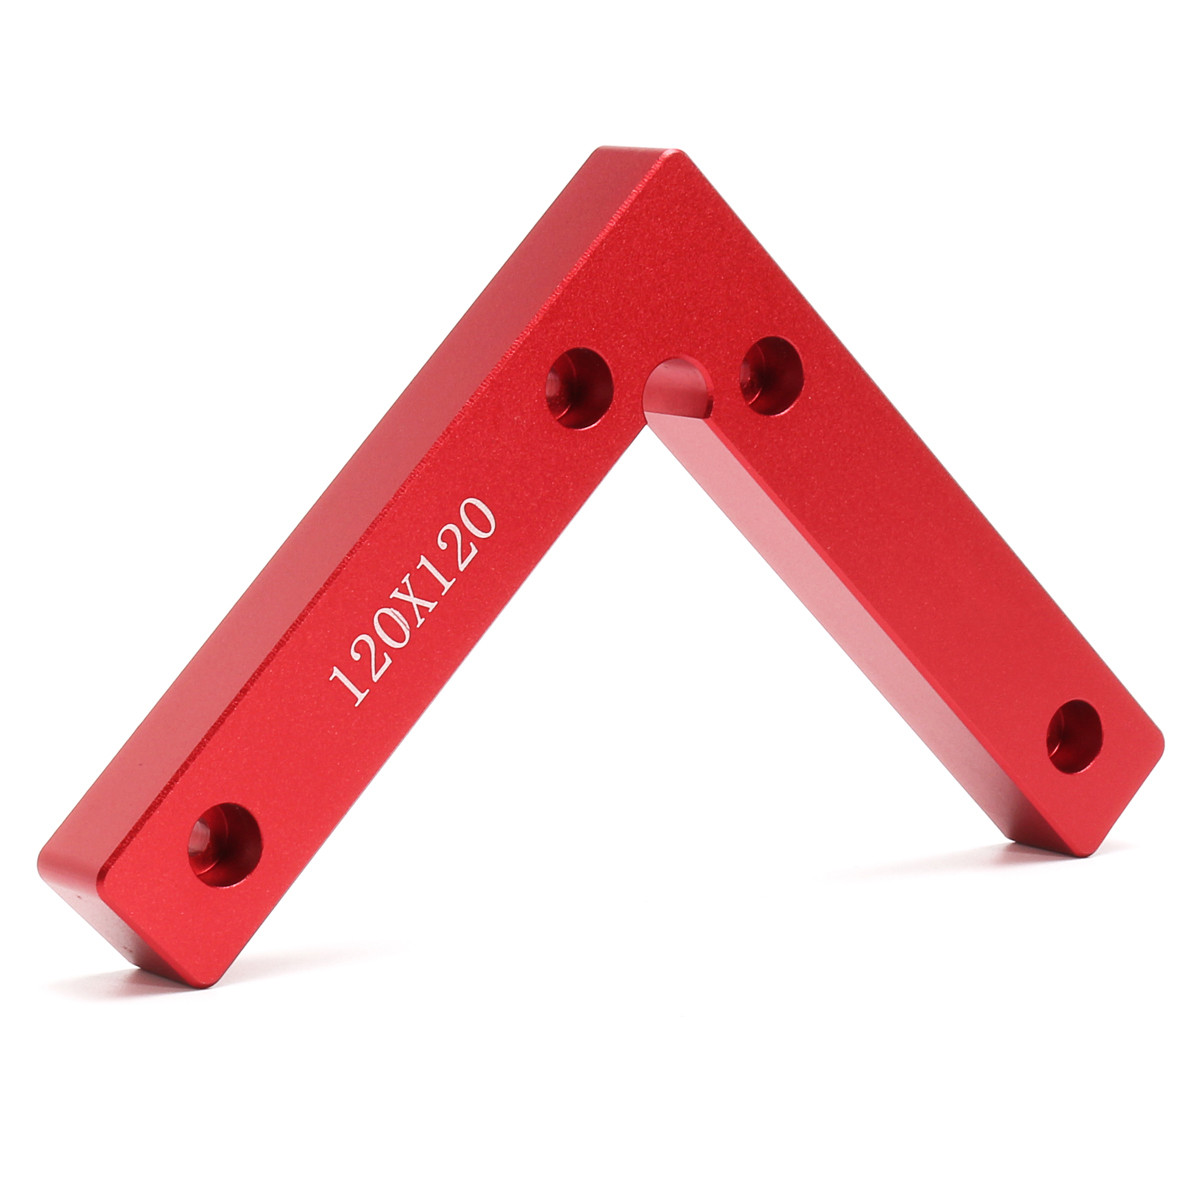 90 Degree Corner Clamp Right Angle Corner Clamp For Wood Metal Weld Welding